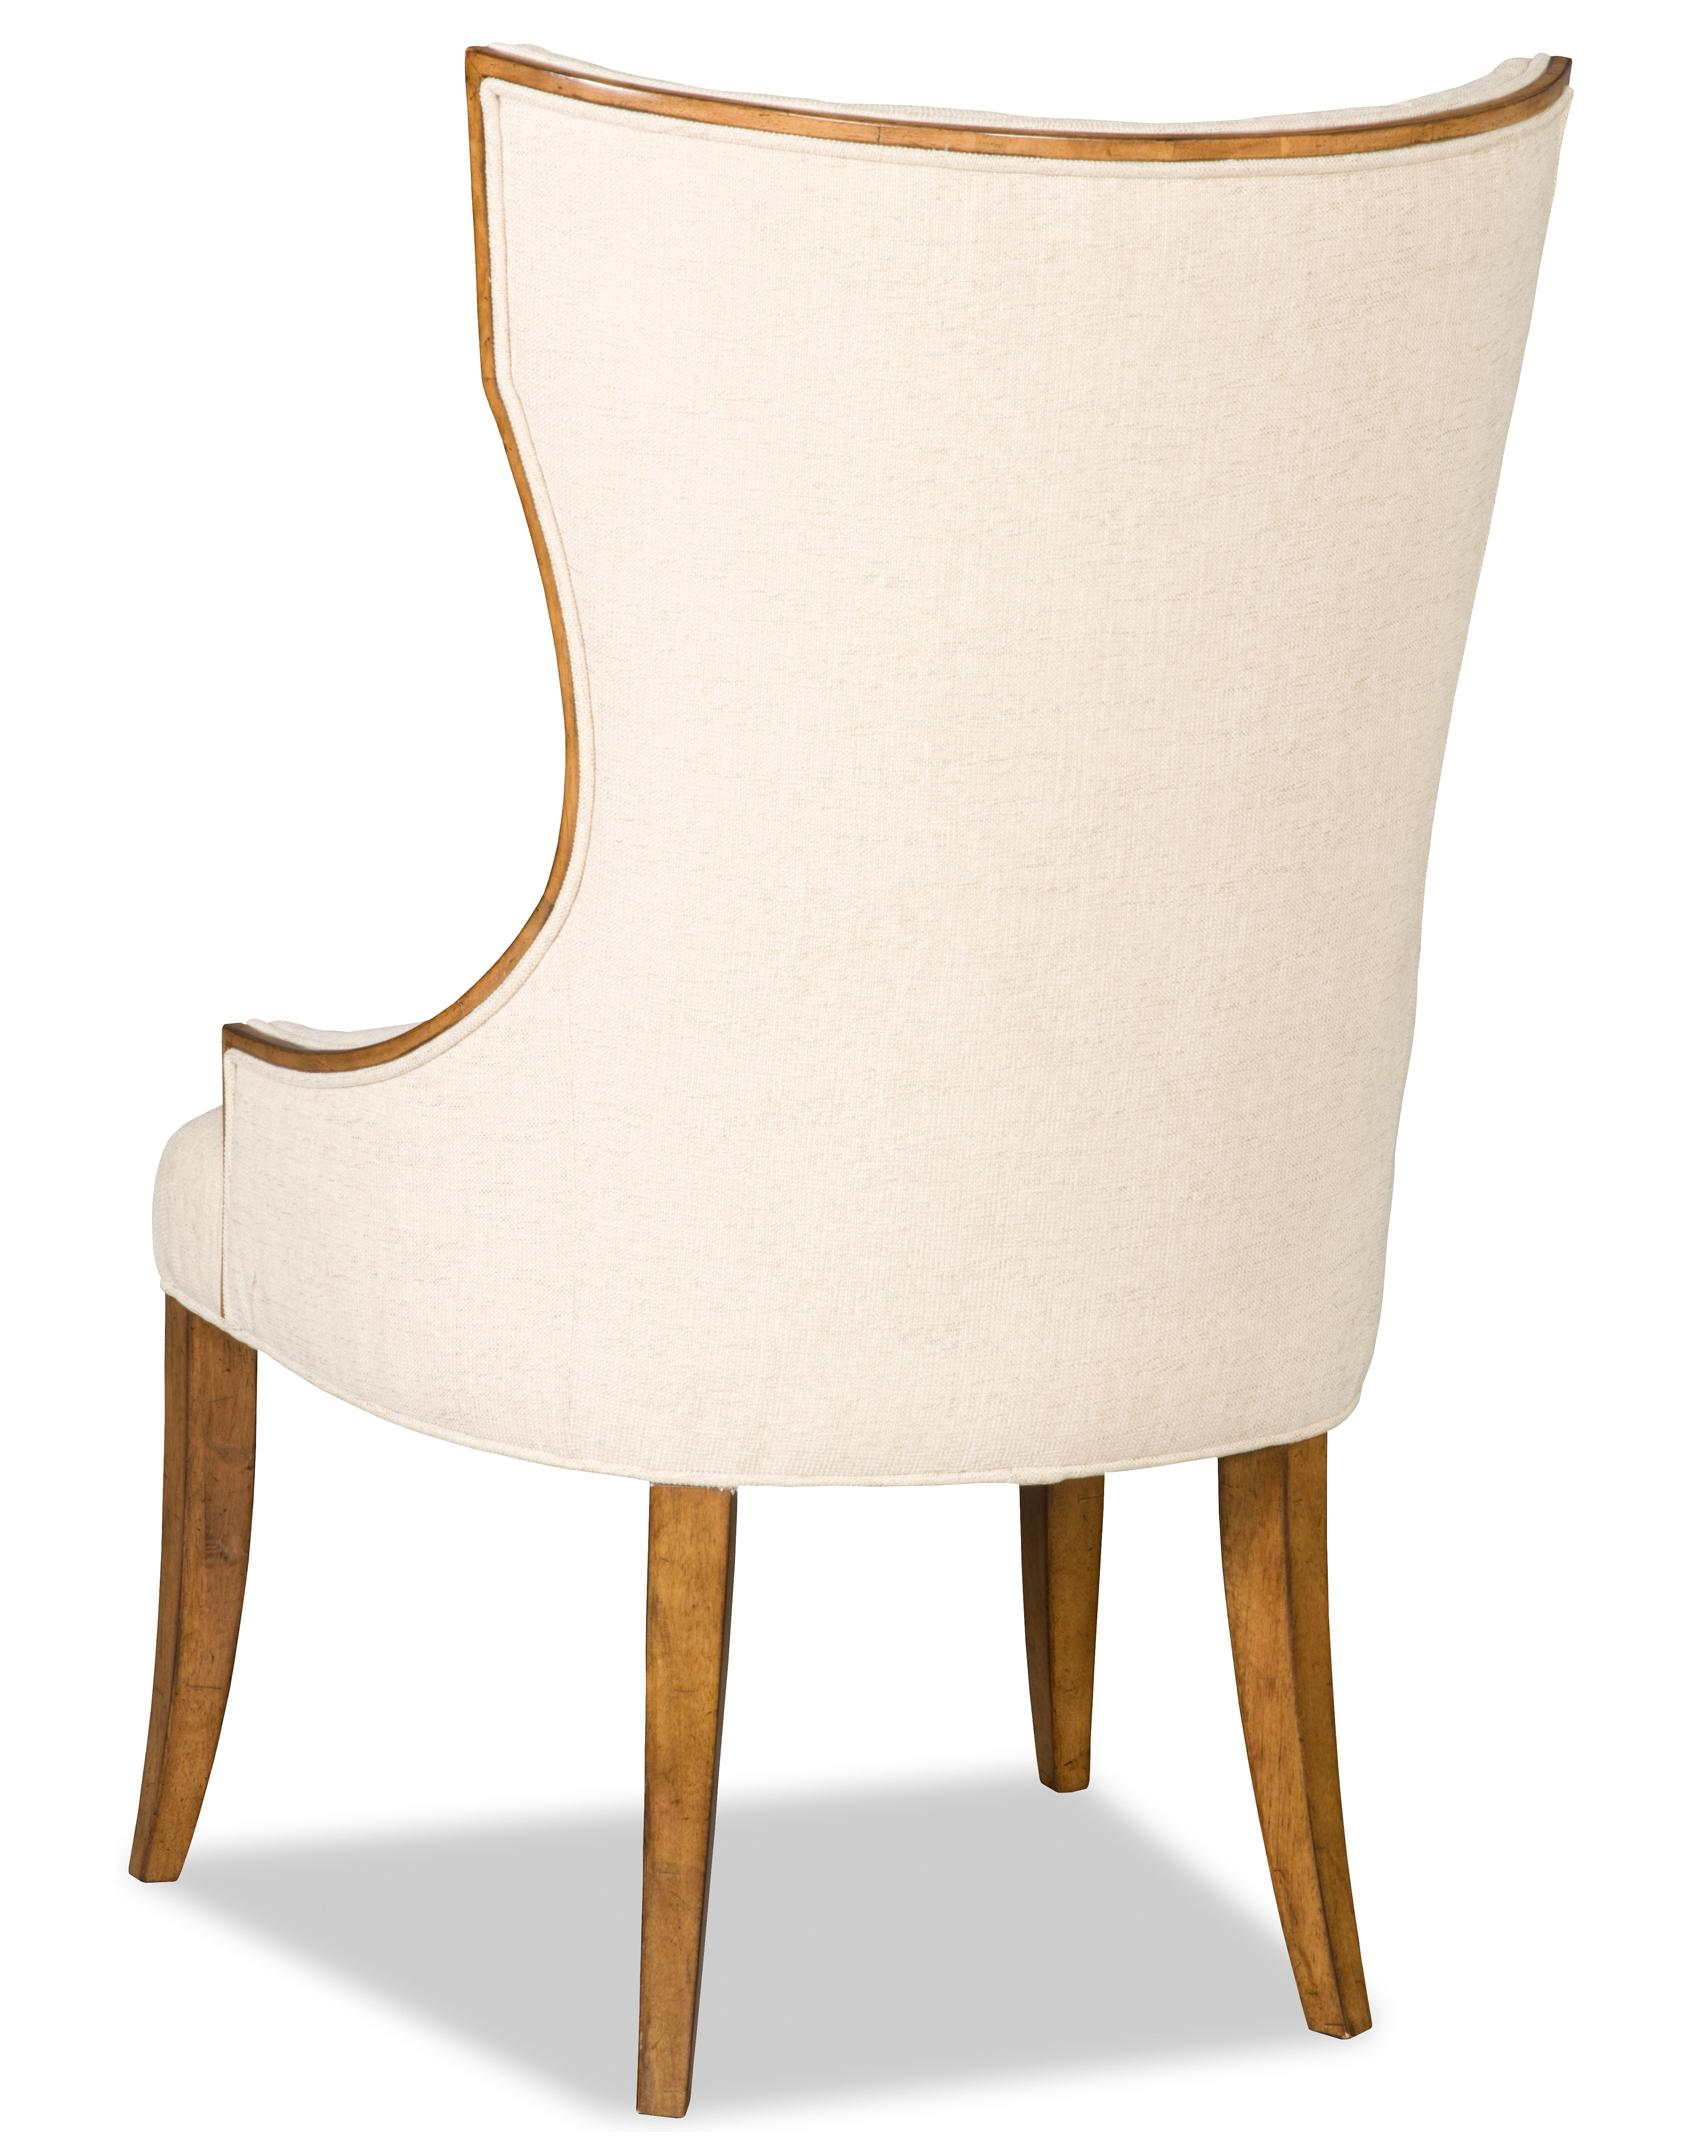 Hamilton Home Dining Chairs Victoria Dining Side Chair - Item Number: 300-350051